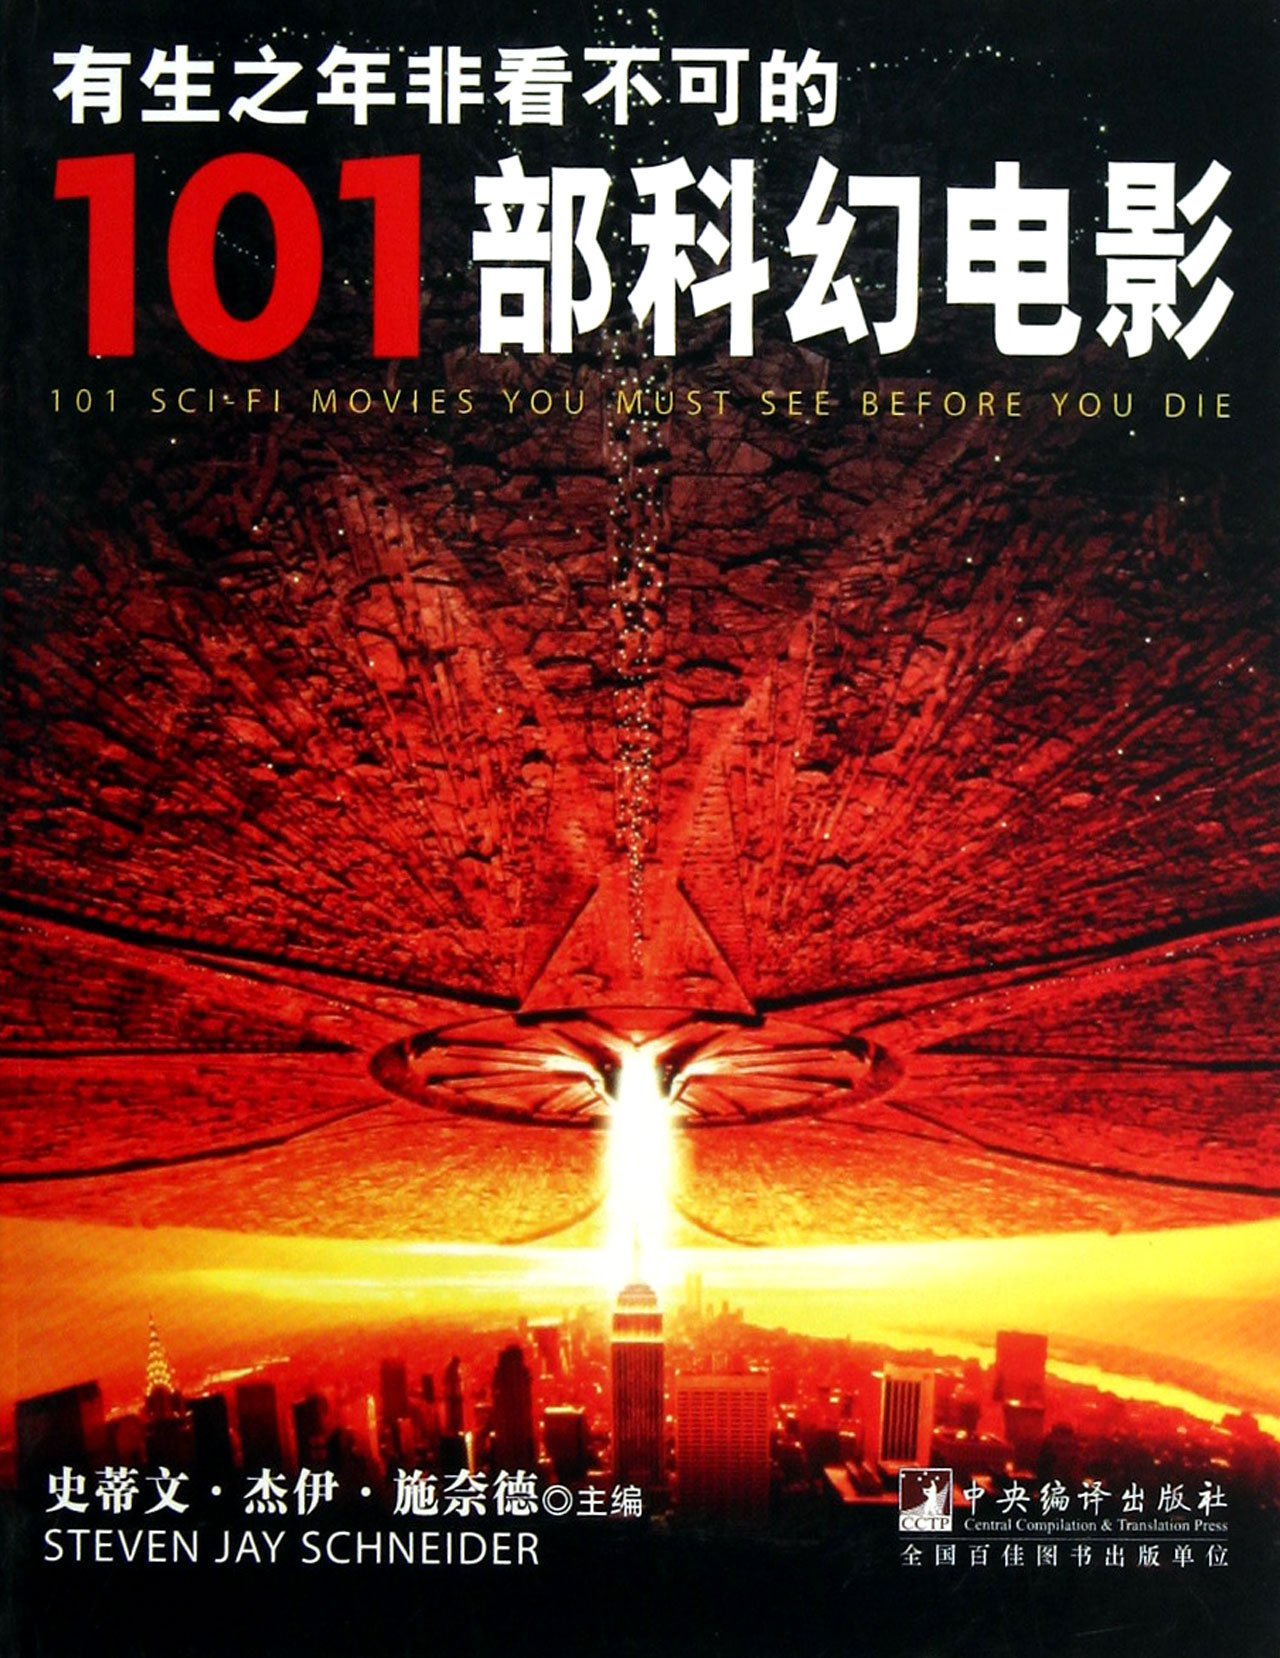 101 Sci-Fi Movies You Must See Before You Die (Chinese Edition) (Chinese)  Paperback – January 1, 2013